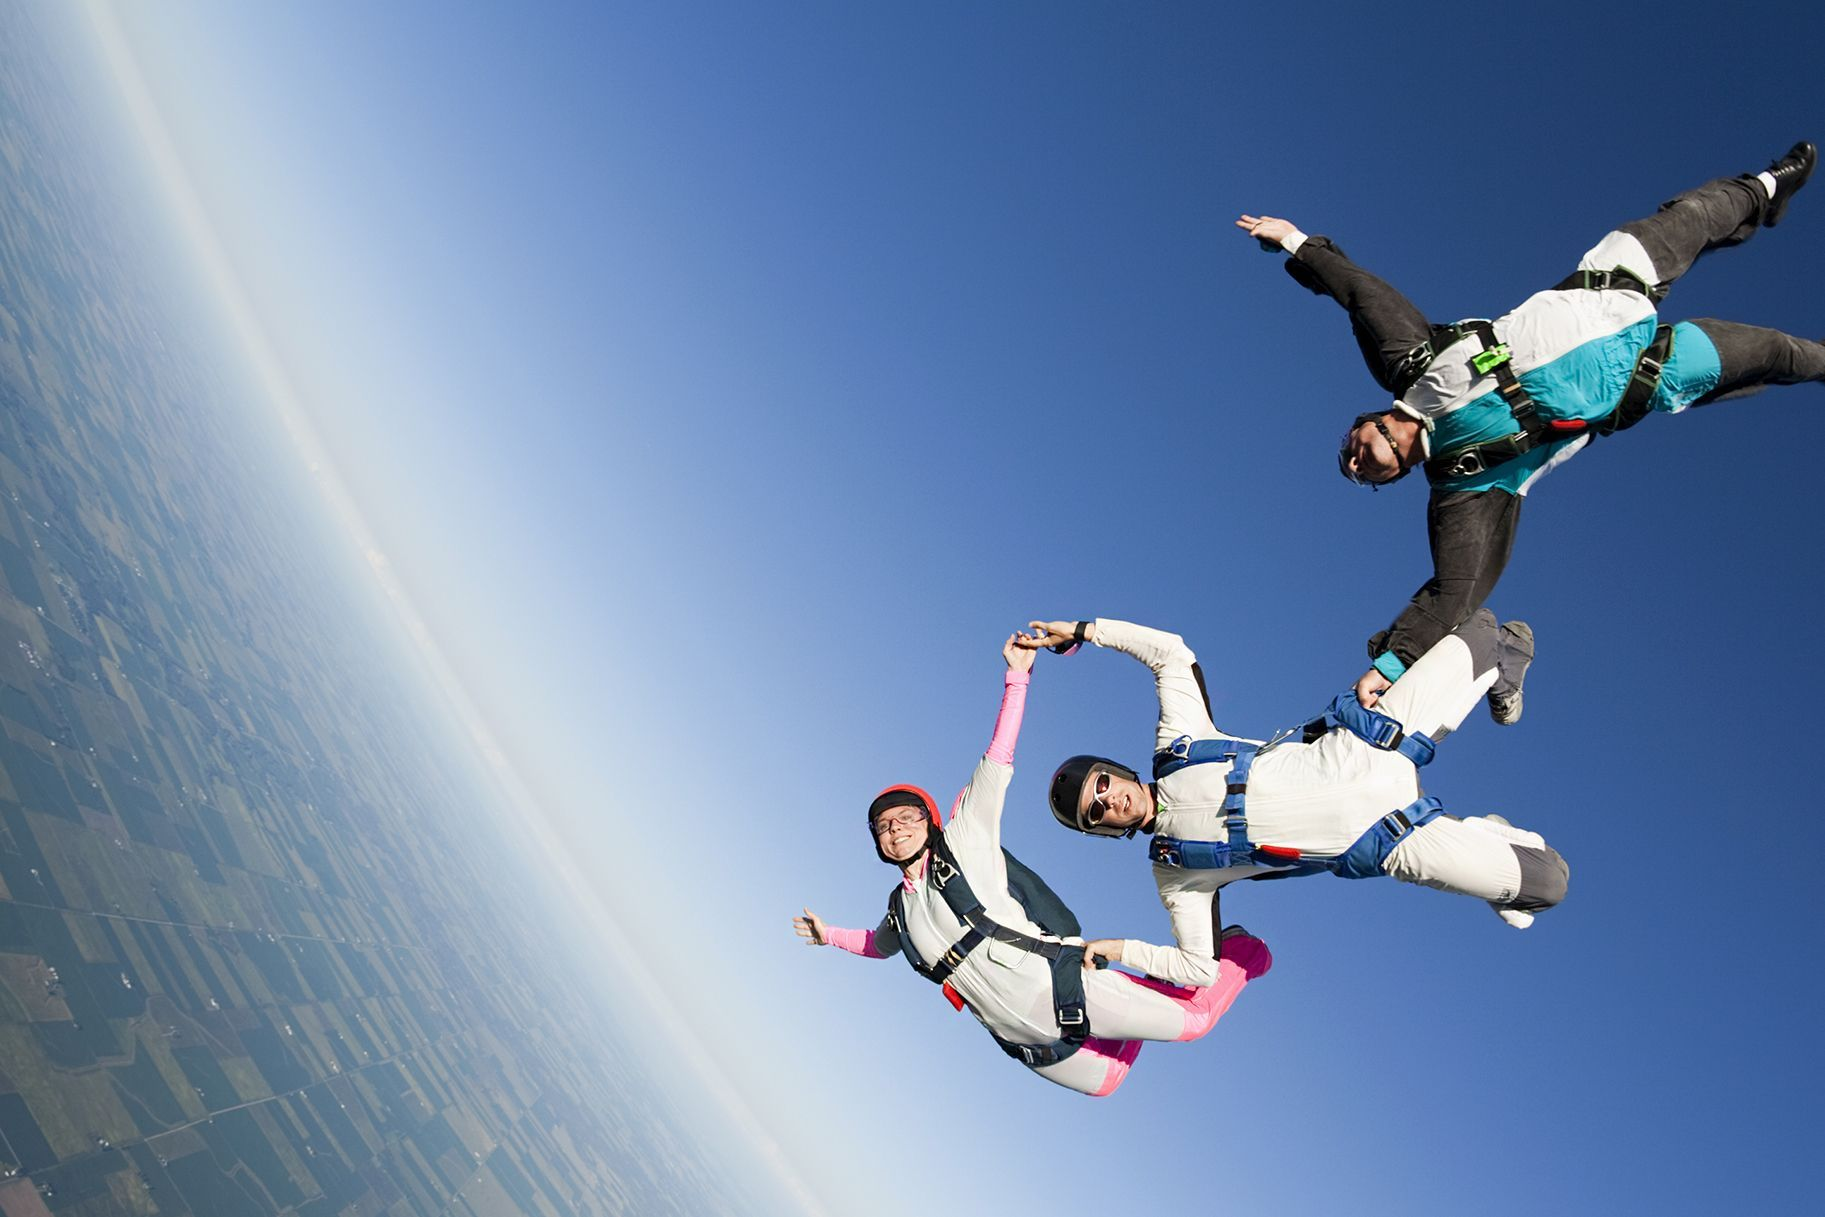 Yolo 5 Best Places To Skydive In America In 2020 Best Places To Skydive Skydiving Bungee Jumping